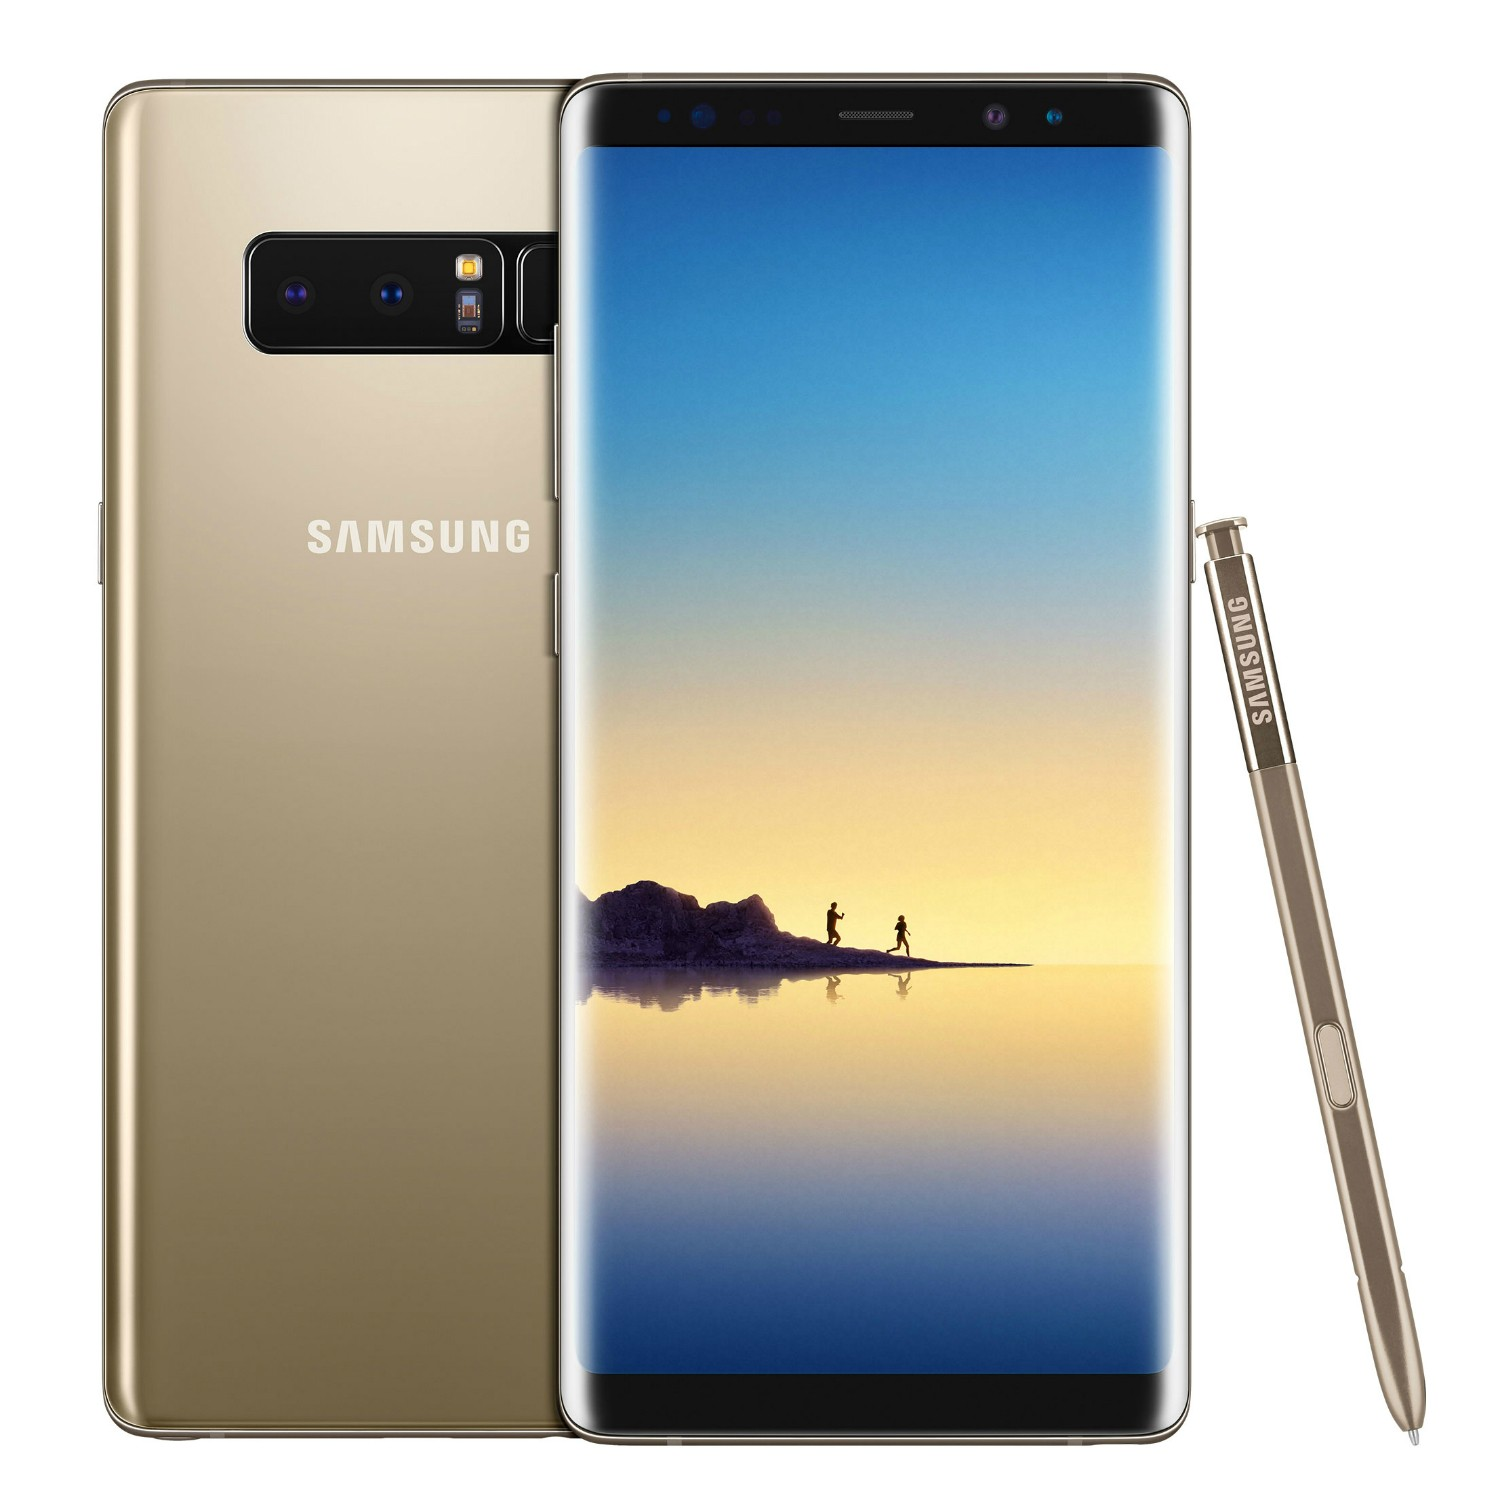 "SMARTPHONE SAMSUNG GALAXY NOTE 8 DUAL SIM SM N950F 6.3"" DUAL EDGE SUPER AMOLED 64 GB OCTA CORE 4G LTE WIFI 12 MP + 12 MP ANDROID REFURBISHED MAPLE GOLD"